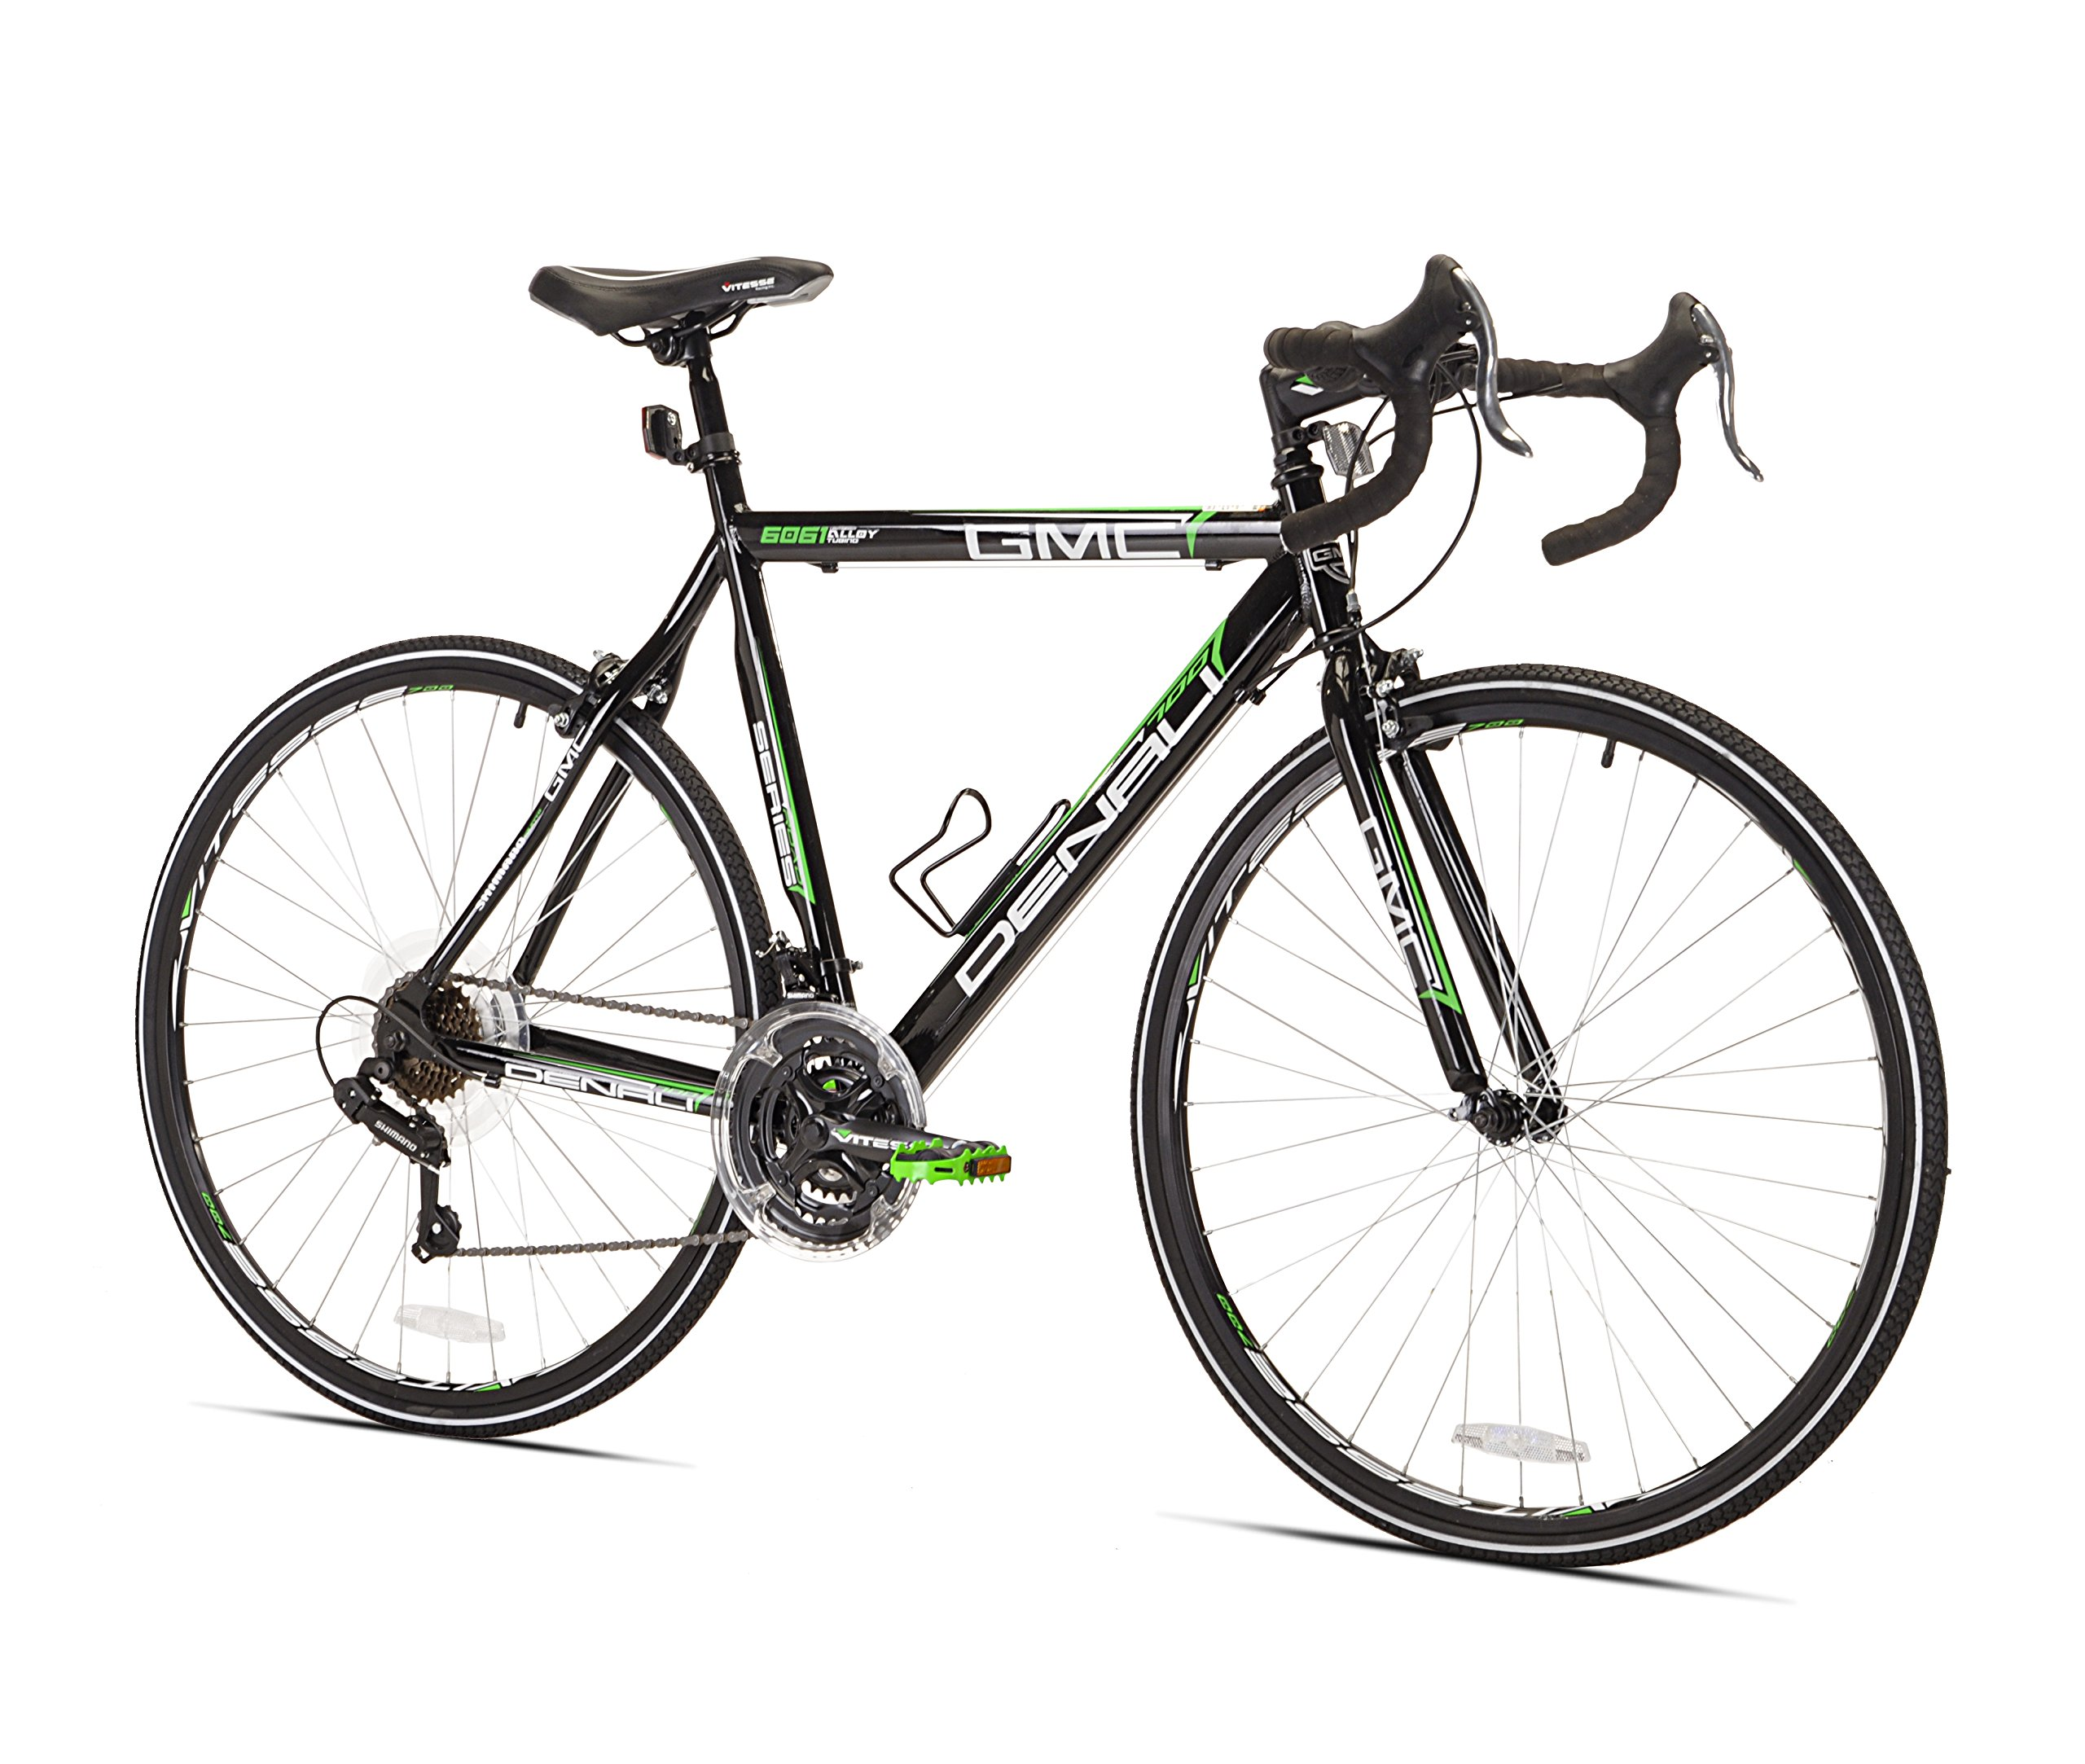 GMC Denali Road Bike Black/Green 20-Inch/Small 21 Speed Shimano Revo ...